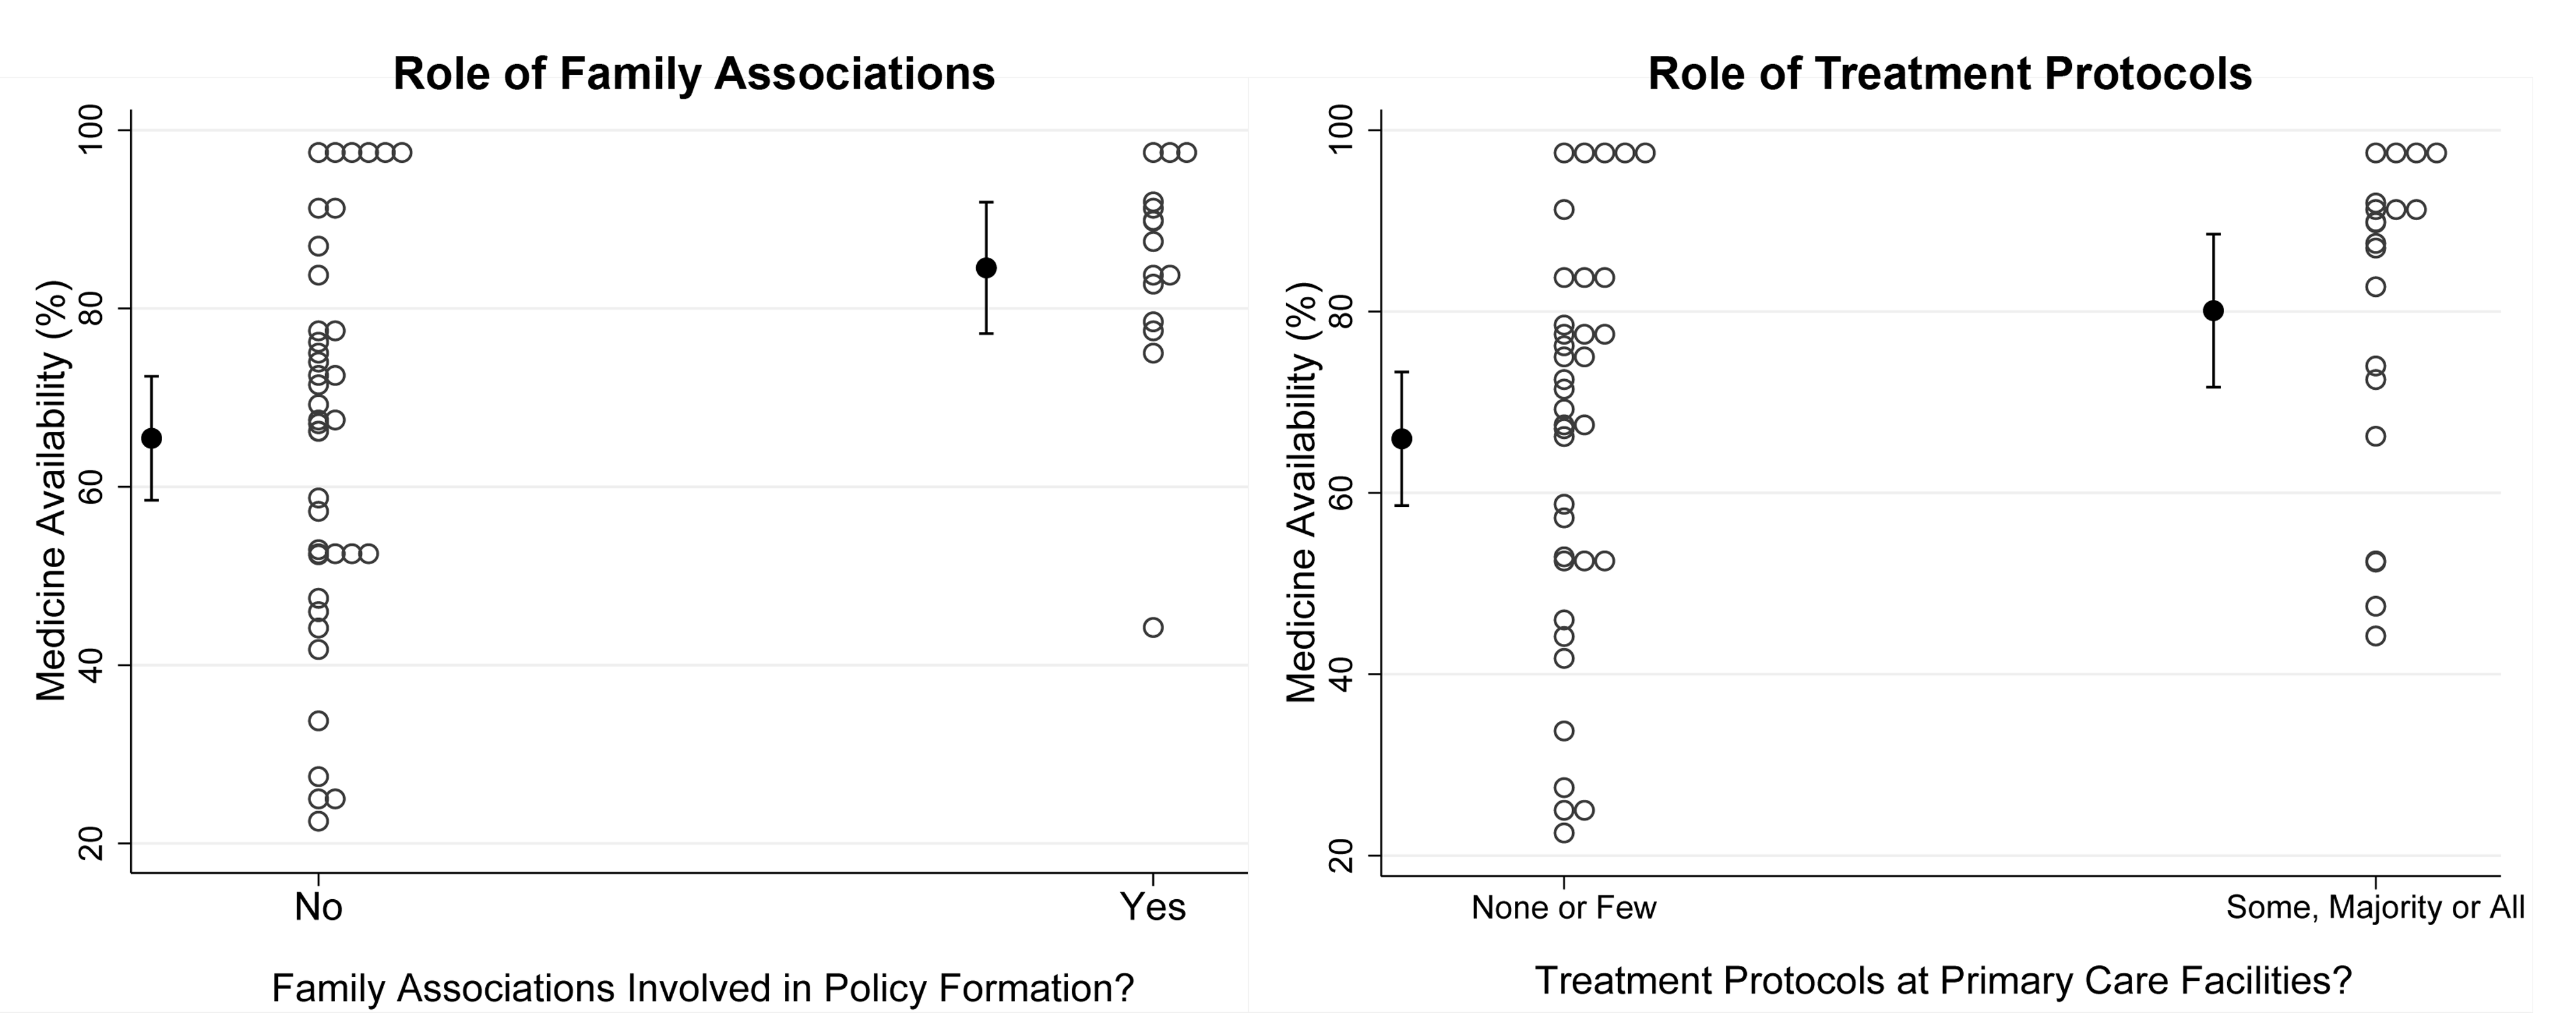 Medicine availability in relation to involvement of family associations and existence of treatment protocols.